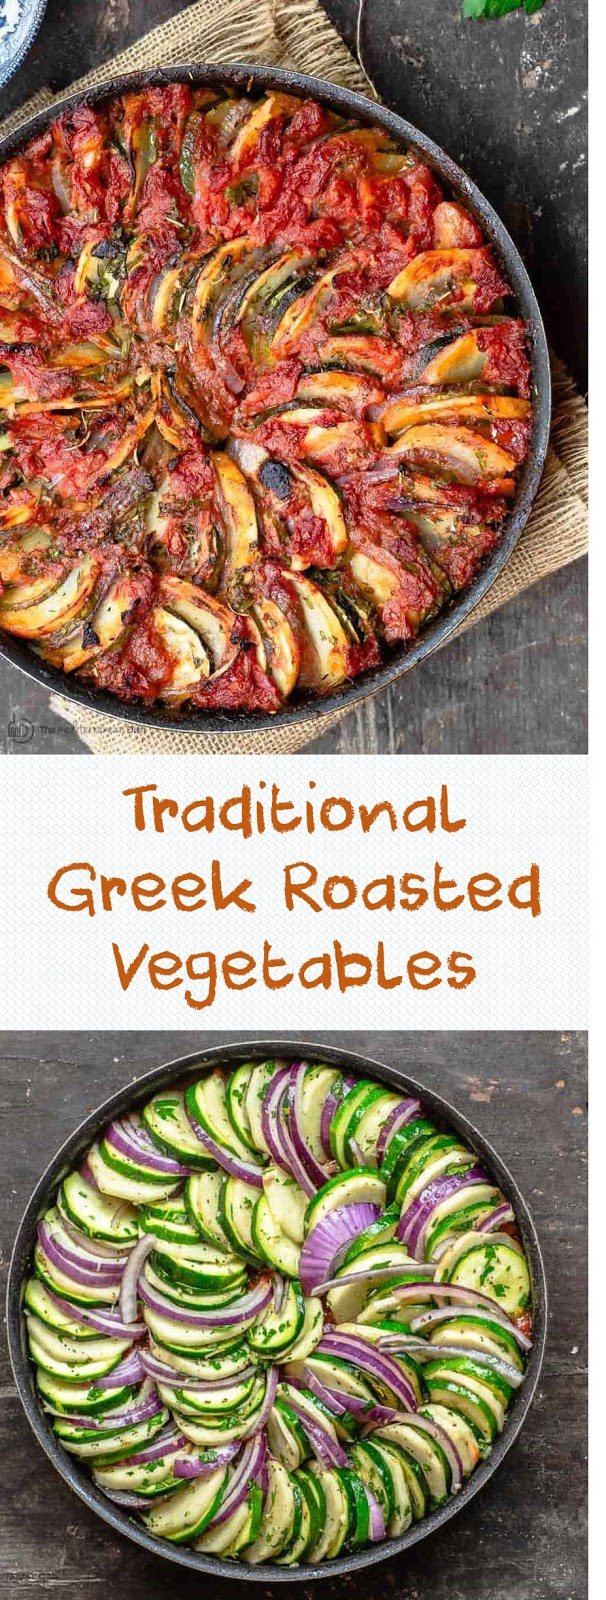 Traditional Greek Roasted Vegetables